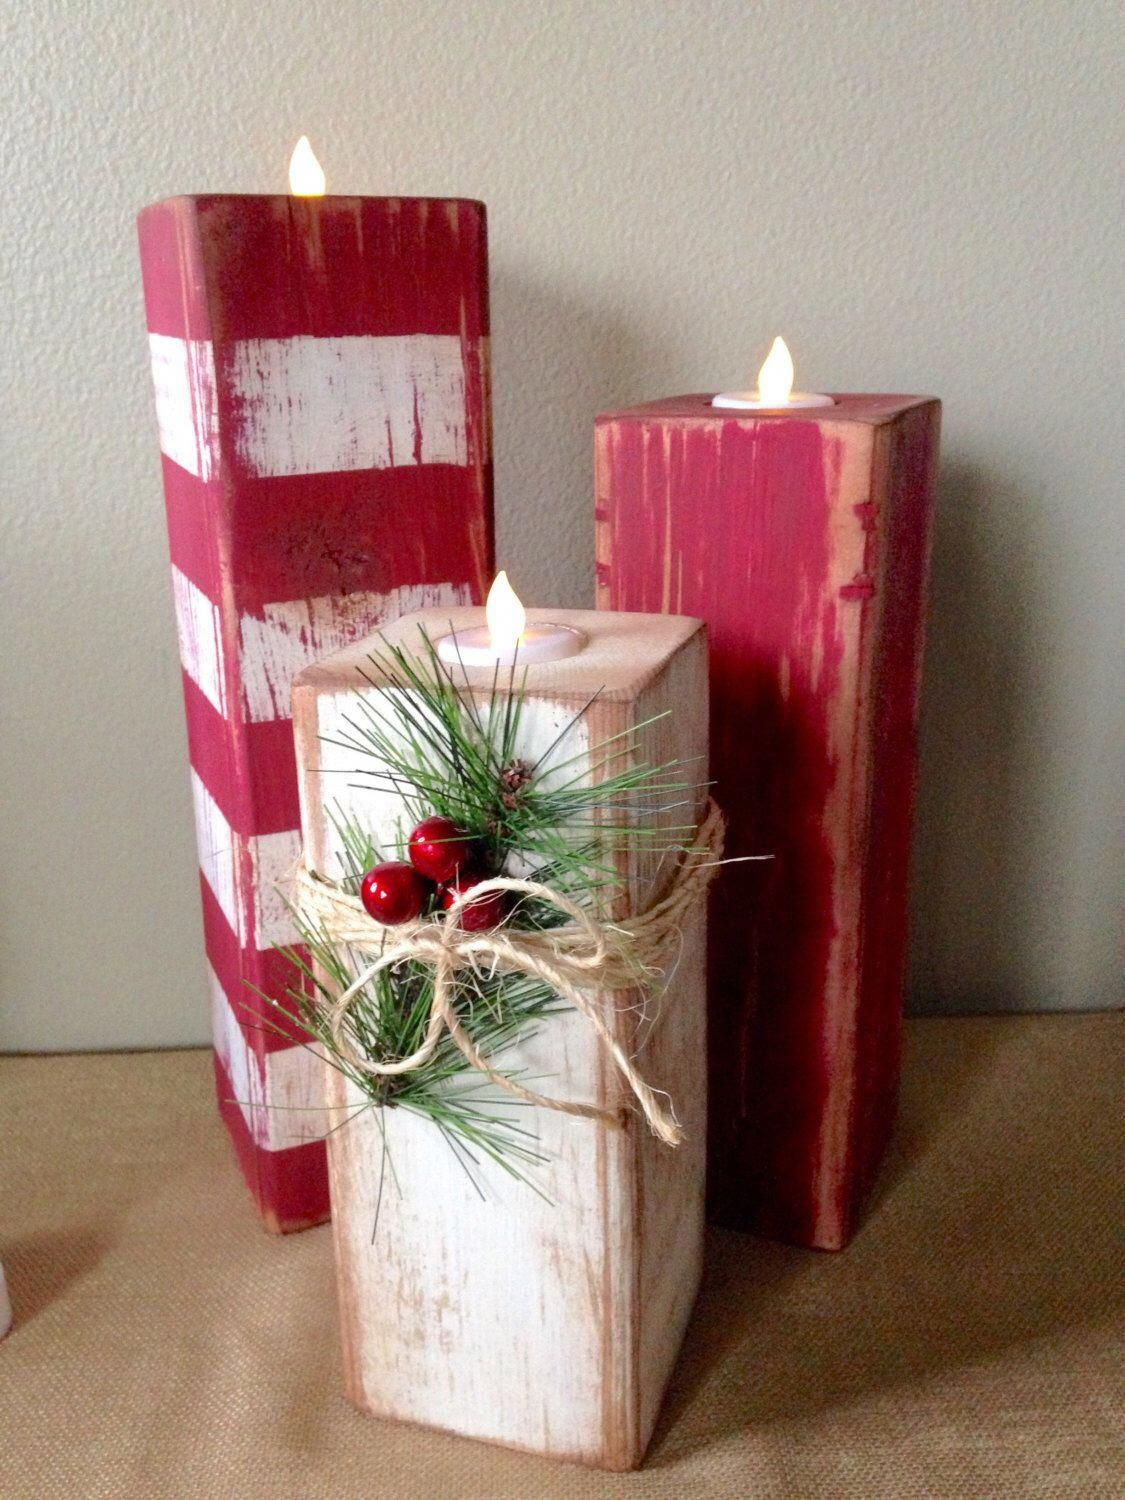 Rustic Christmas Candlesticks Farmhouse Christmas Candles | Etsy -   15 christmas crafts ideas